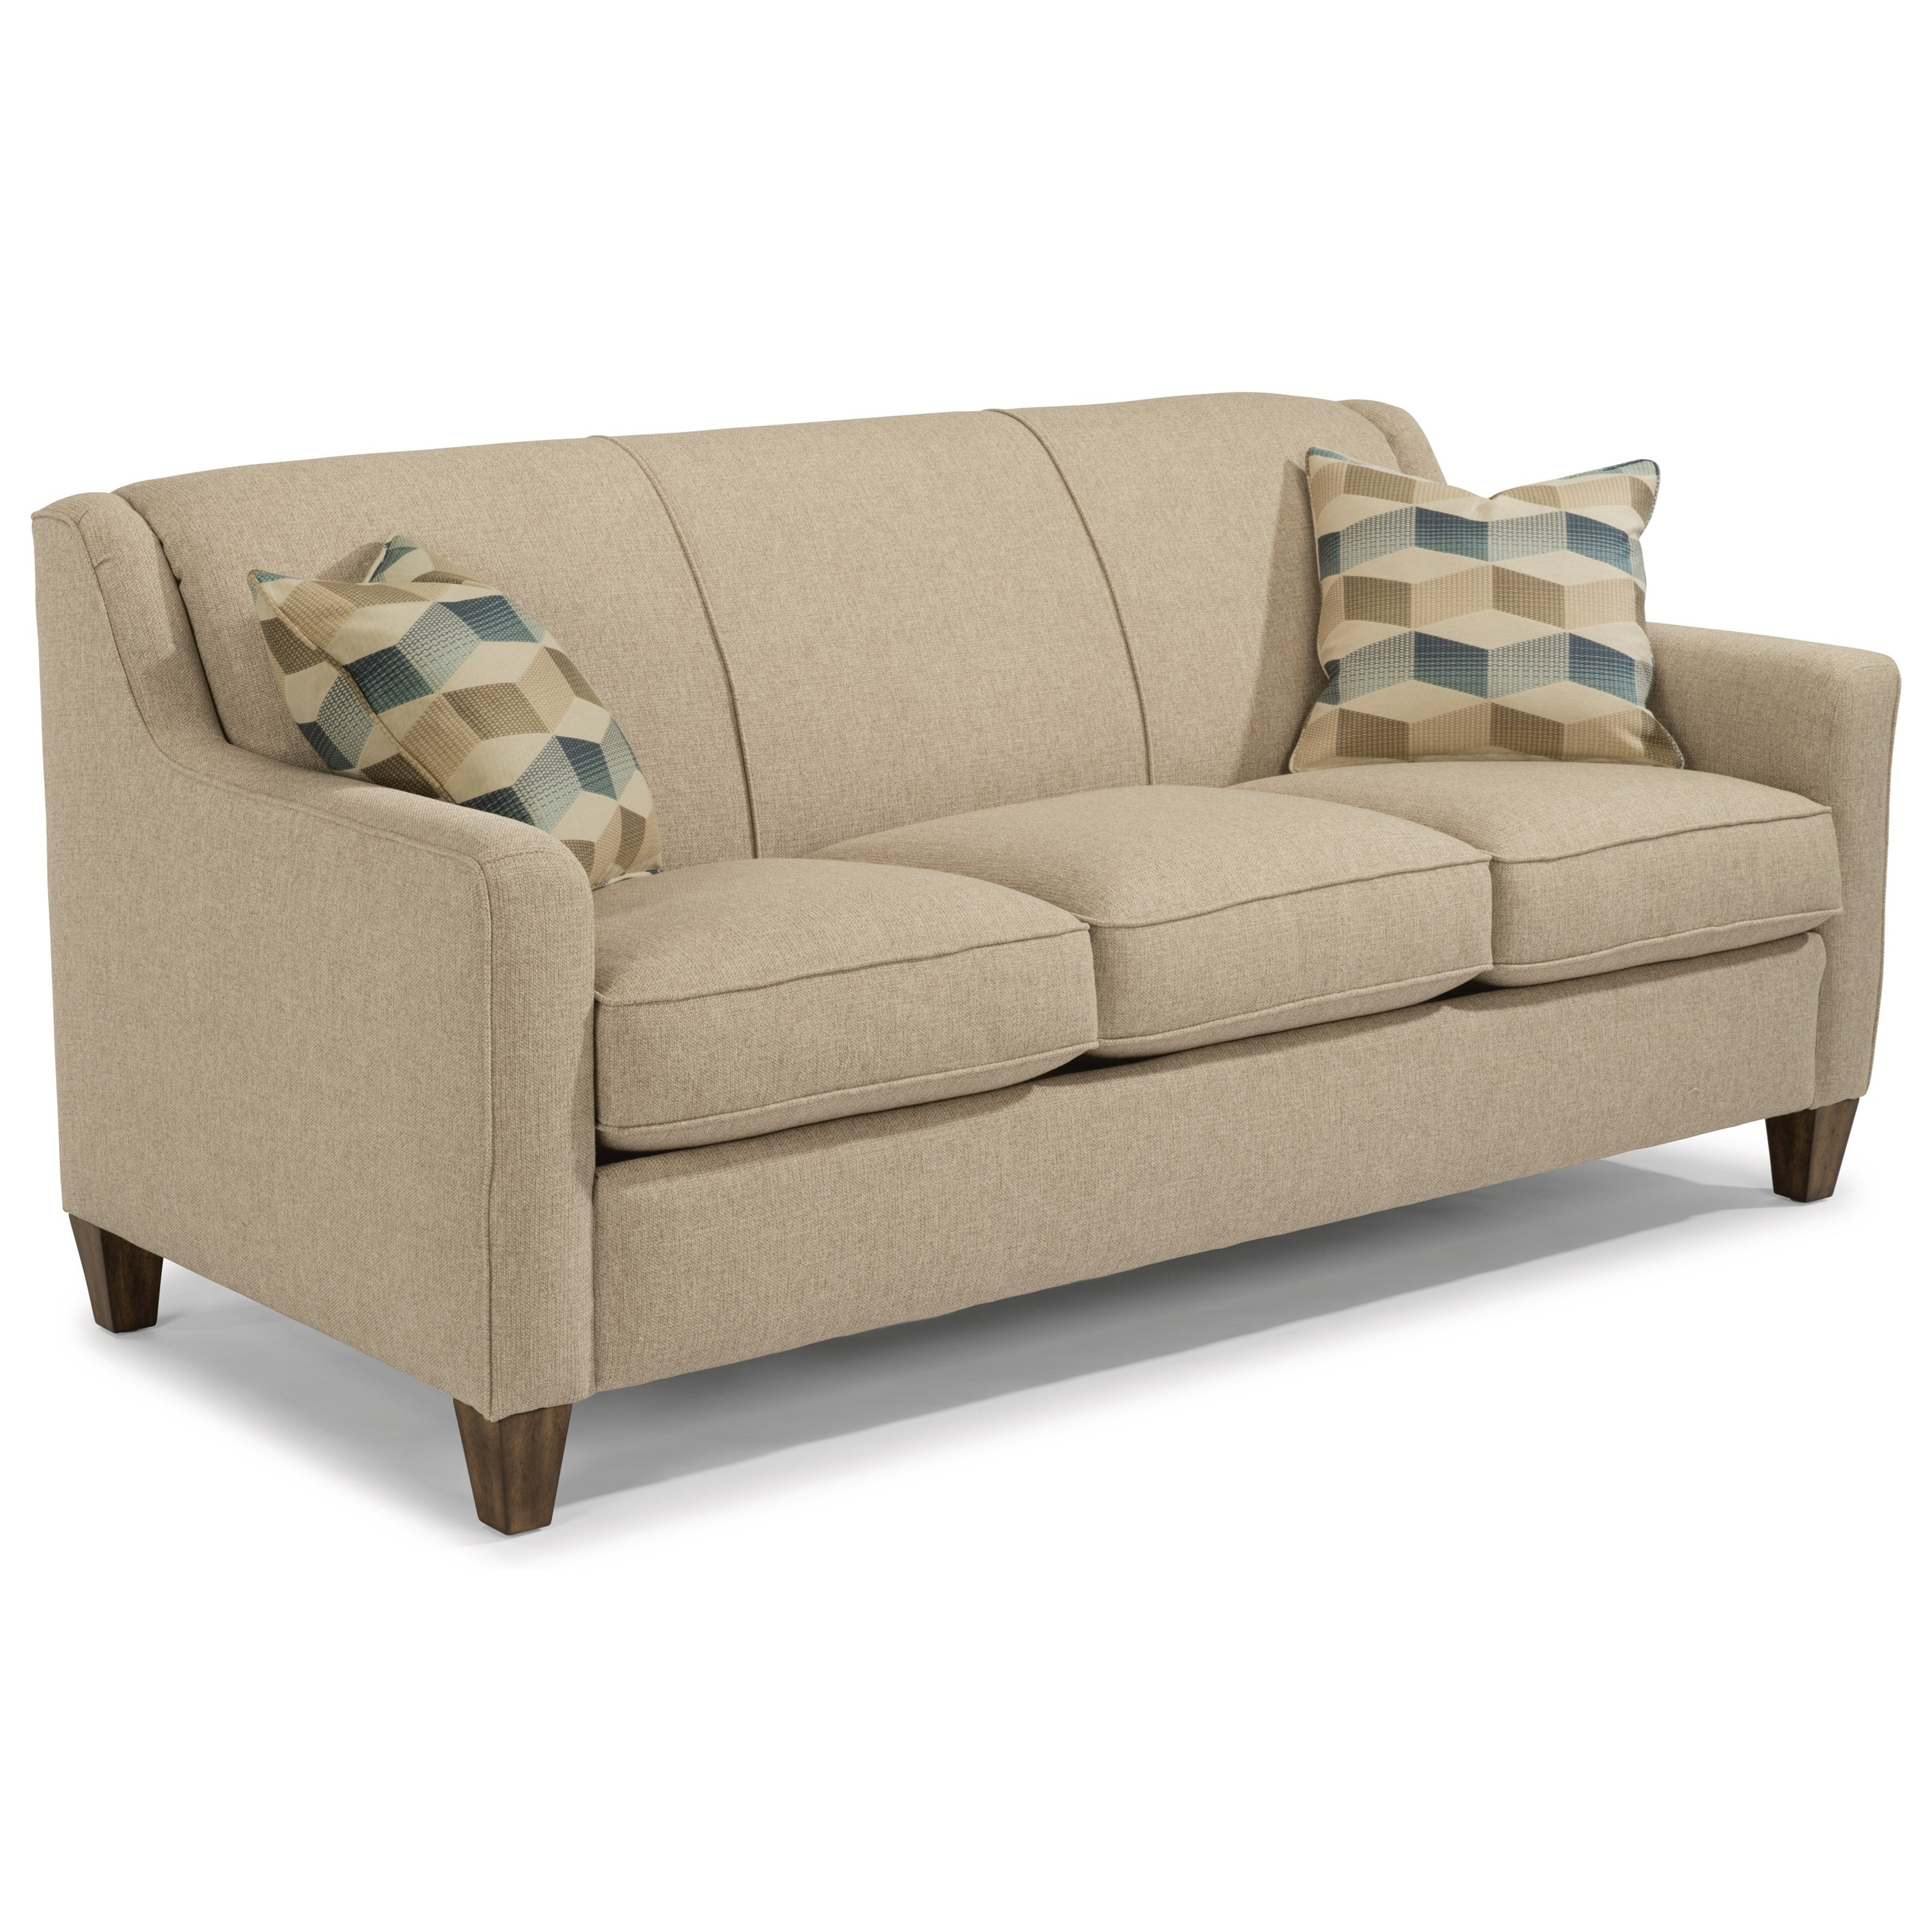 Flexsteel Holly Contemporary Sofa with Angled Track Arms